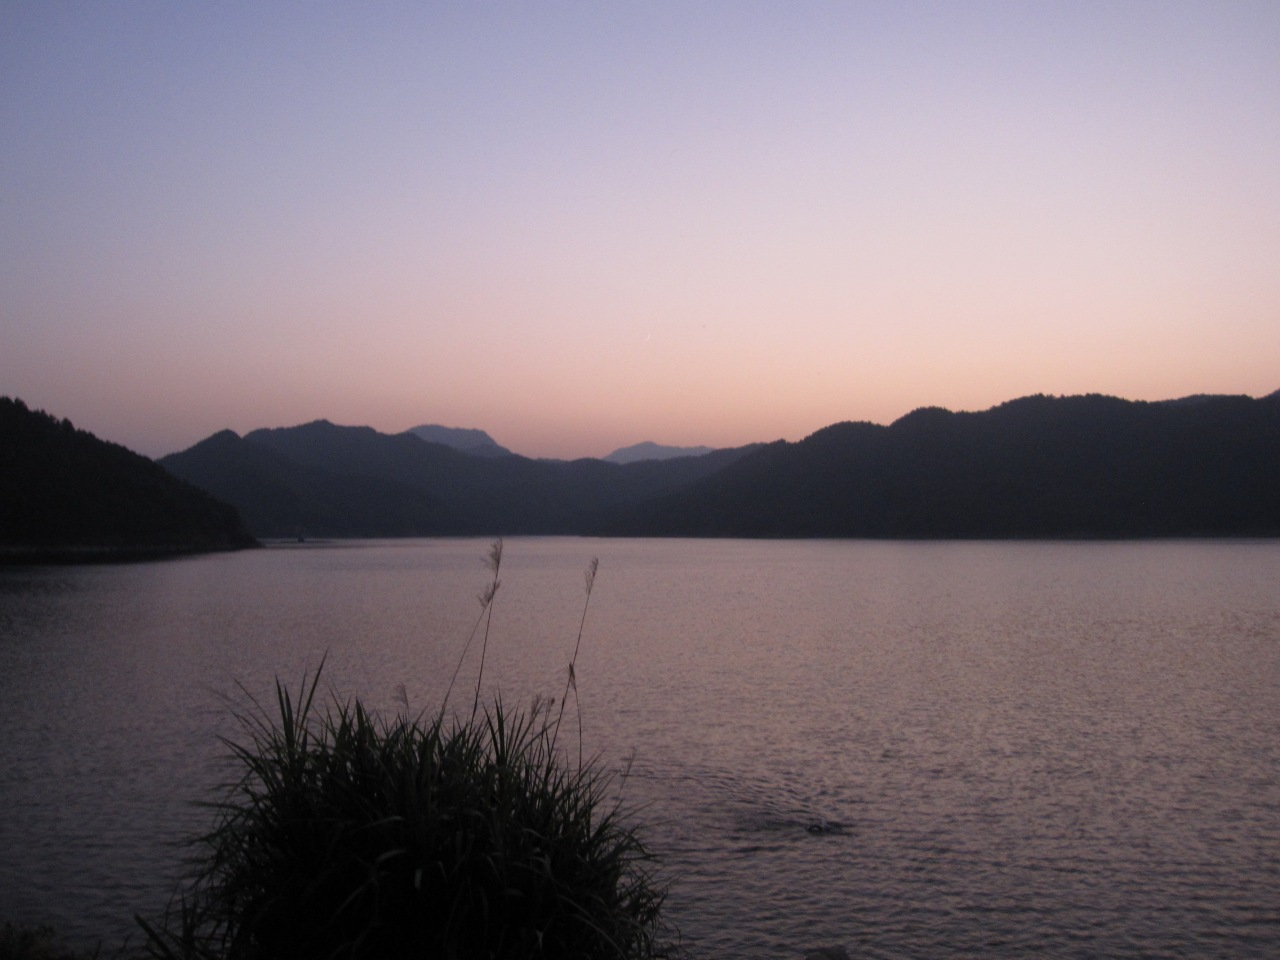 Swimming in Huating lake as the sun sets